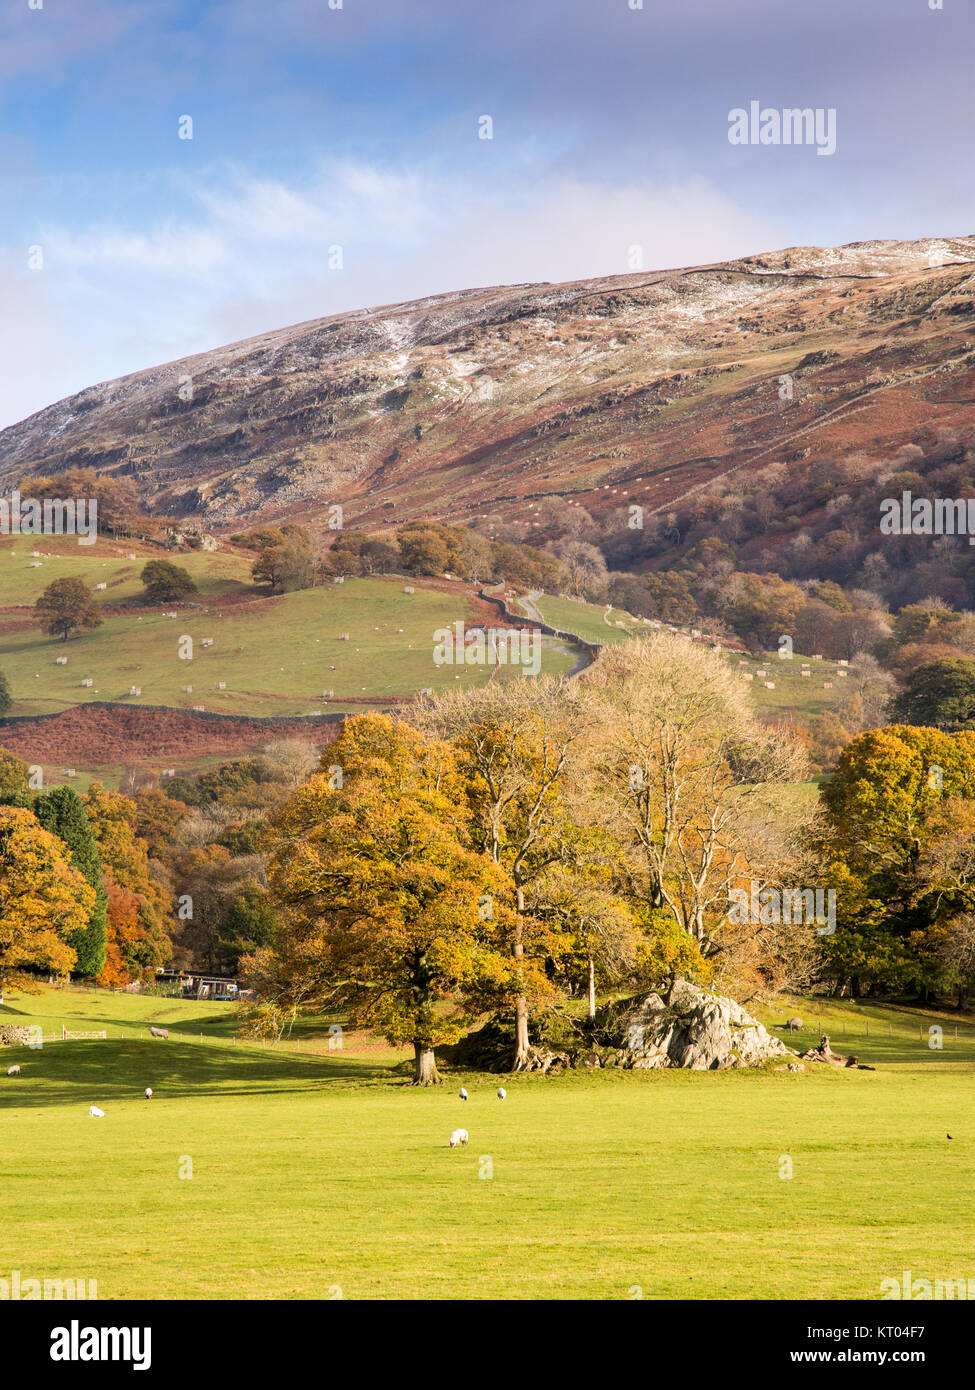 Sheep graze under autumn trees and snow-dusted mountains in fields near Ambleside in England's Lake District - Stock Image